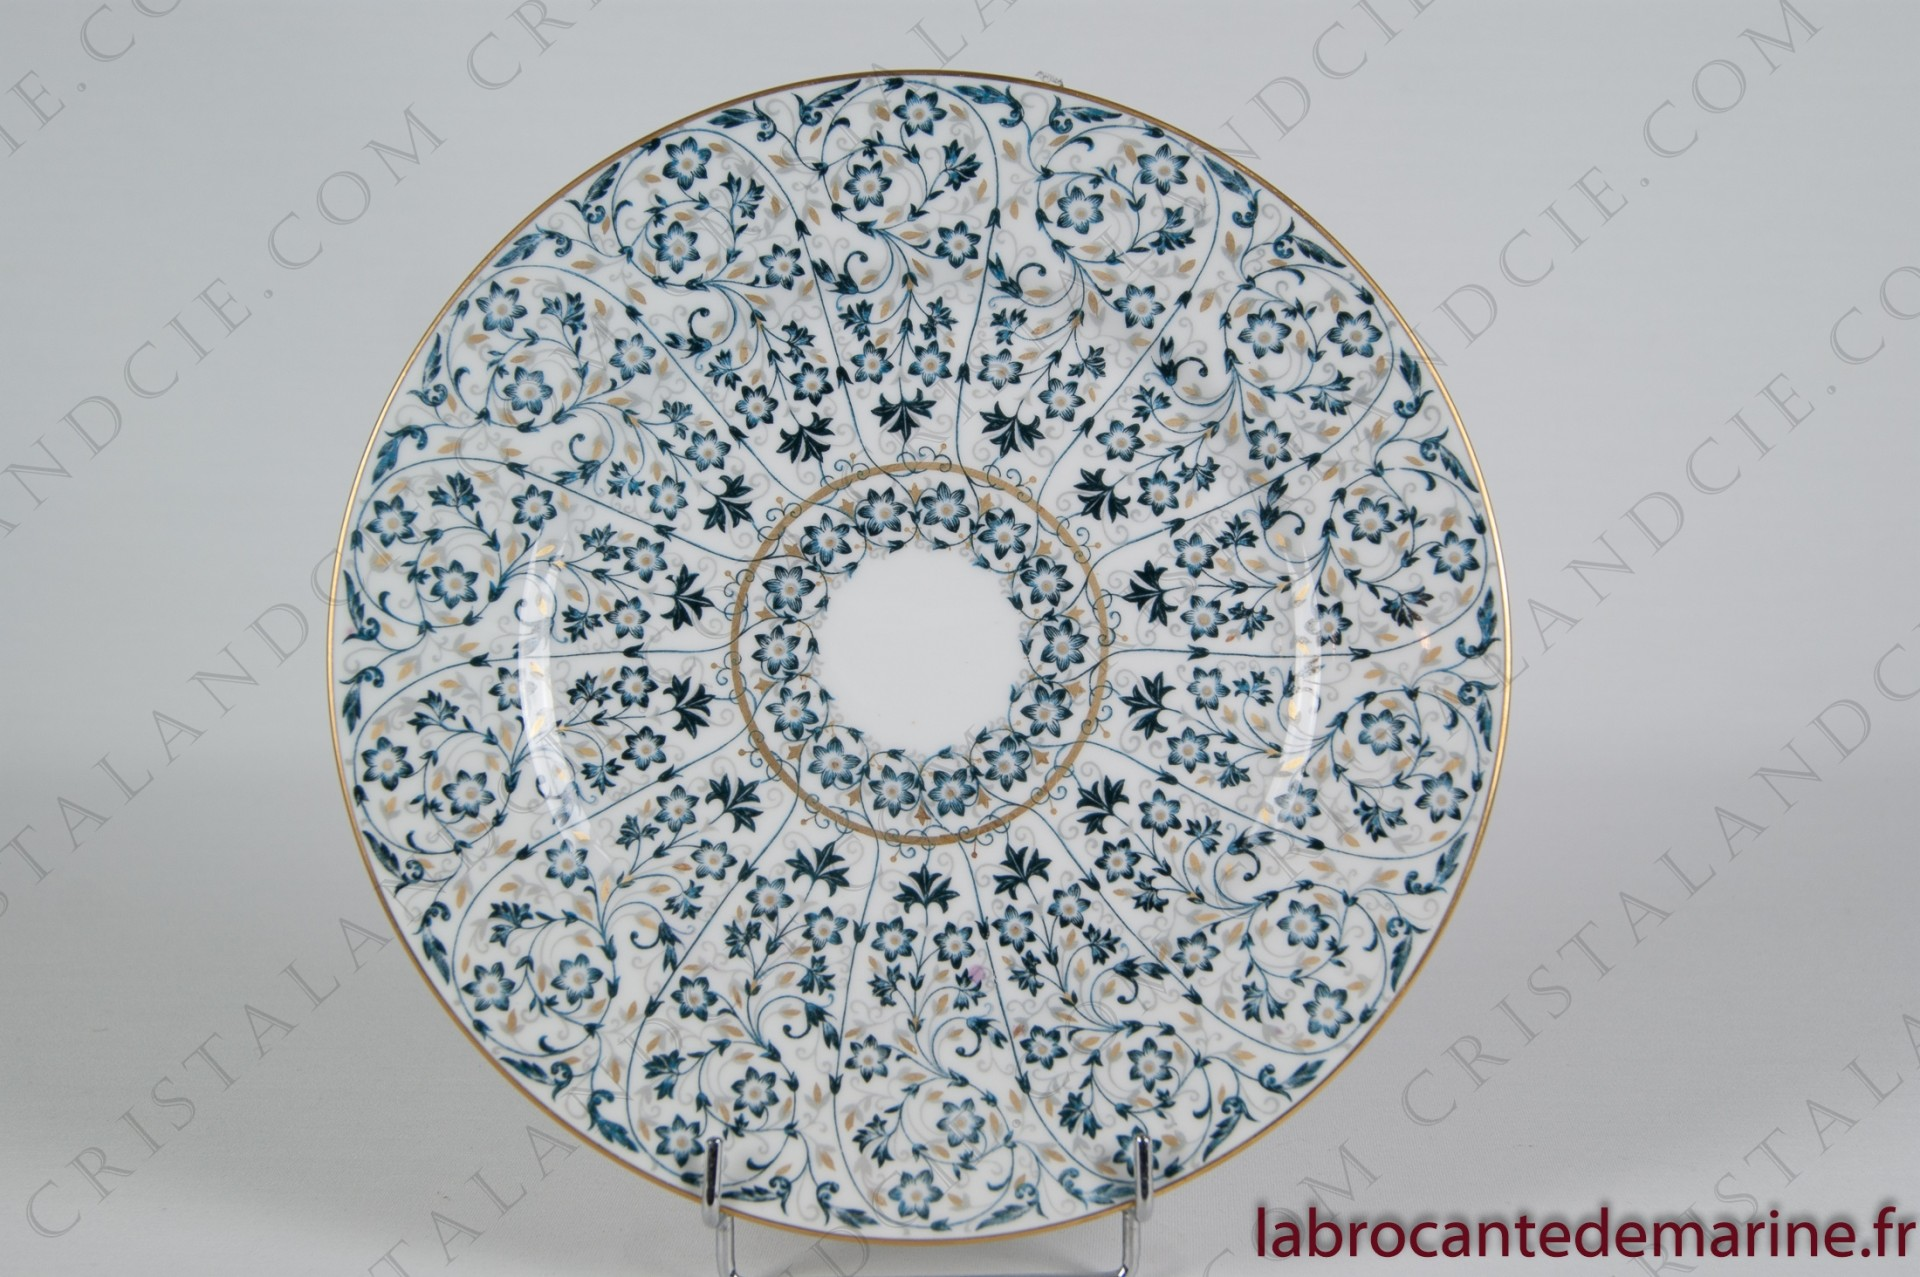 Dinner plate Séville by Haviland and Parlon